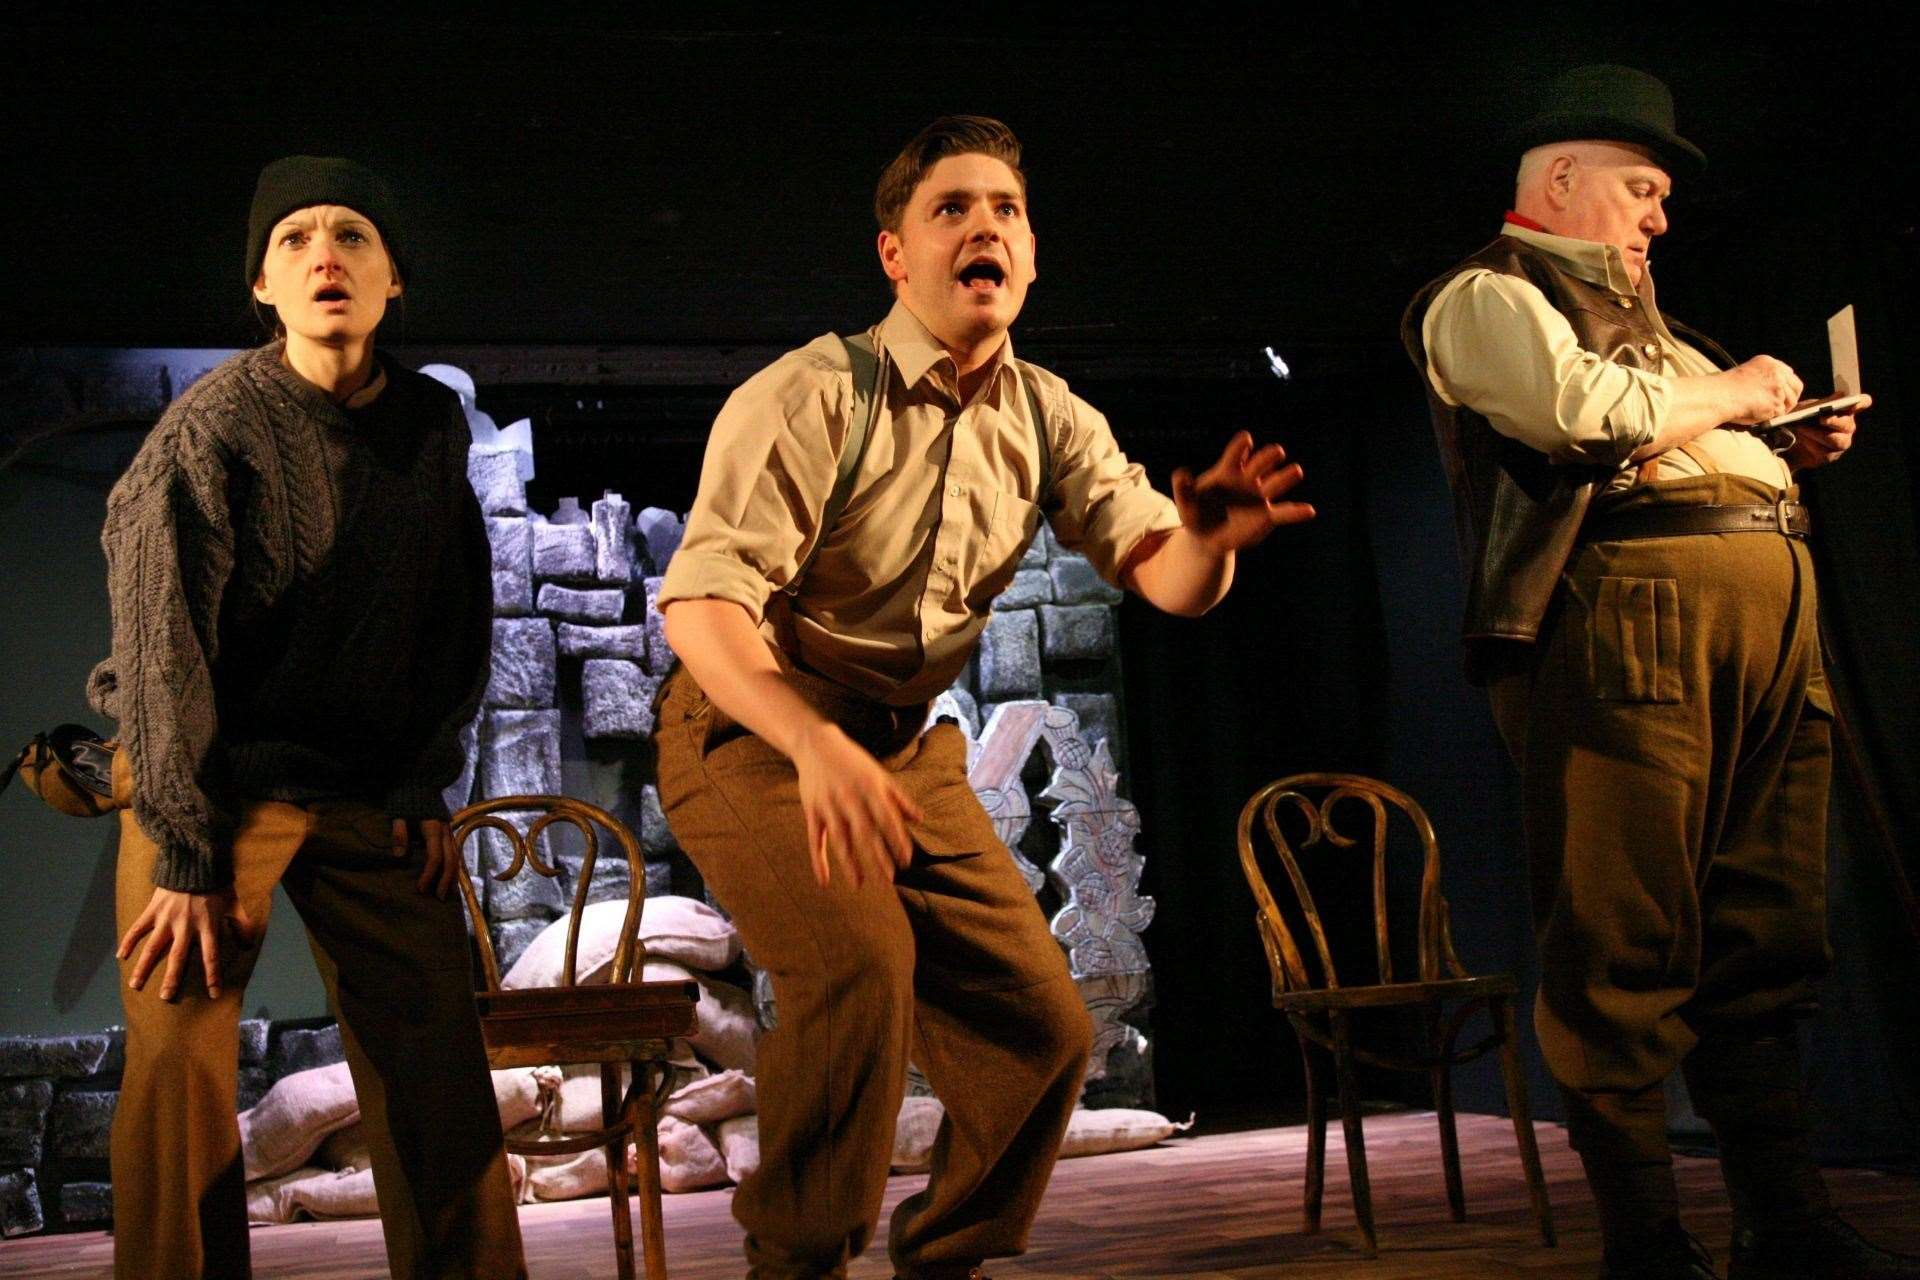 The play, The Beaches of St Valéry, depicts the events of 80 years ago.